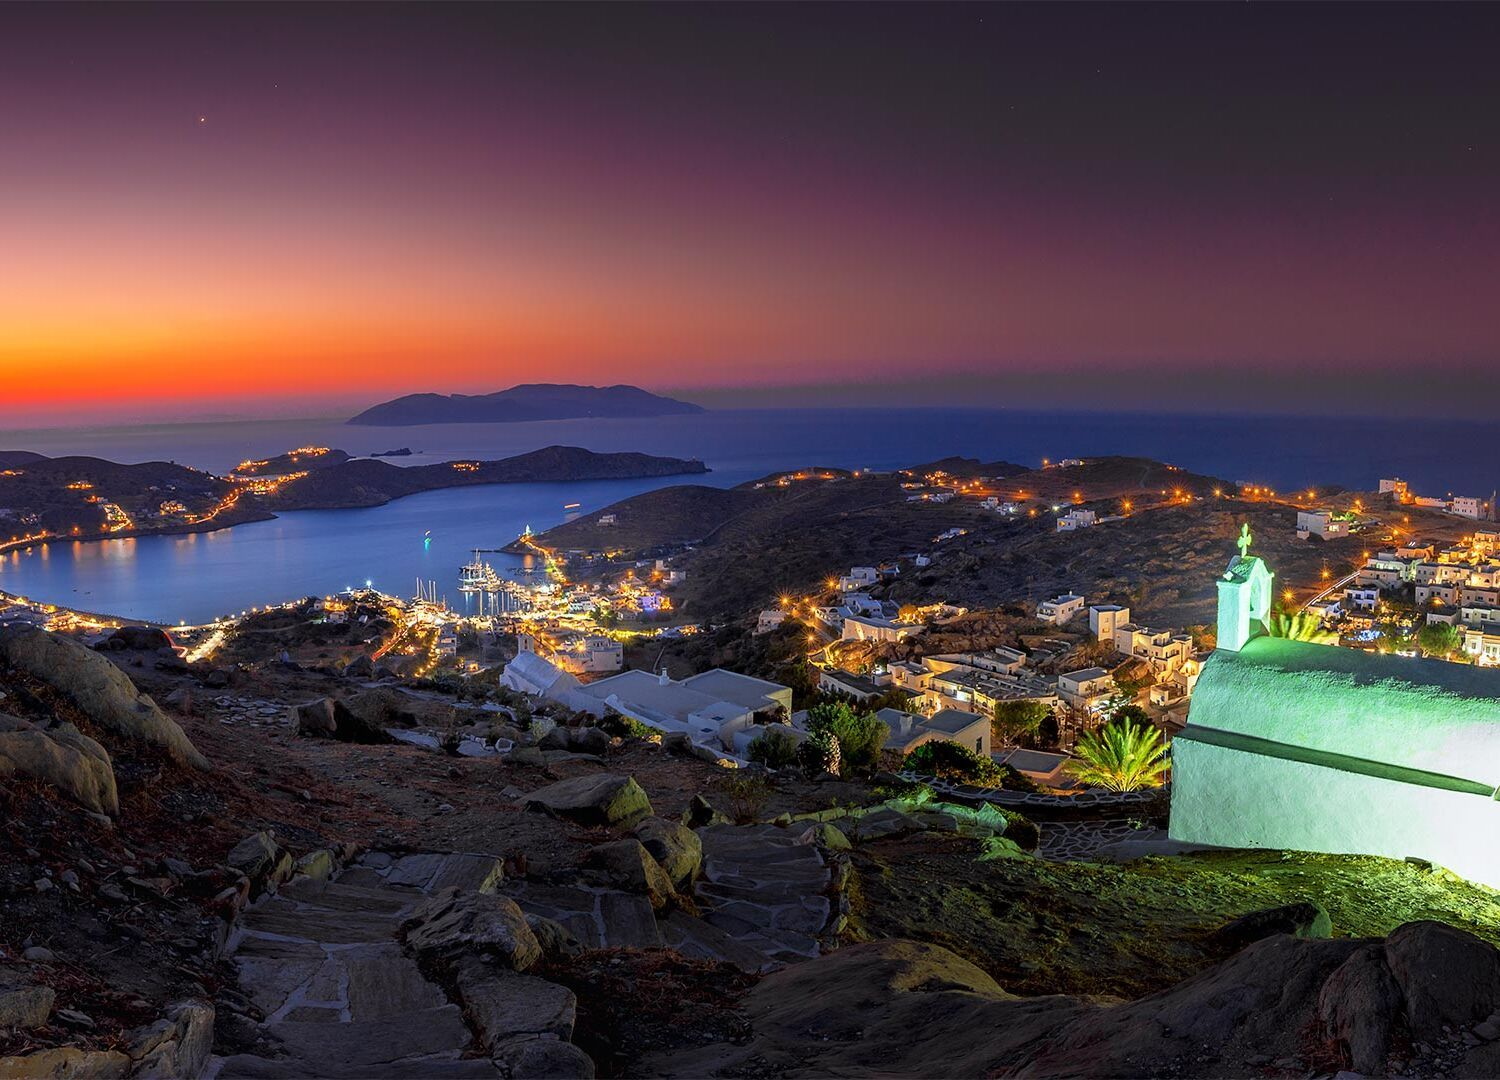 The Church of Panagia Gremniotisas can be found at the highest point of Hora offers perhaps the best view, especially at sunset